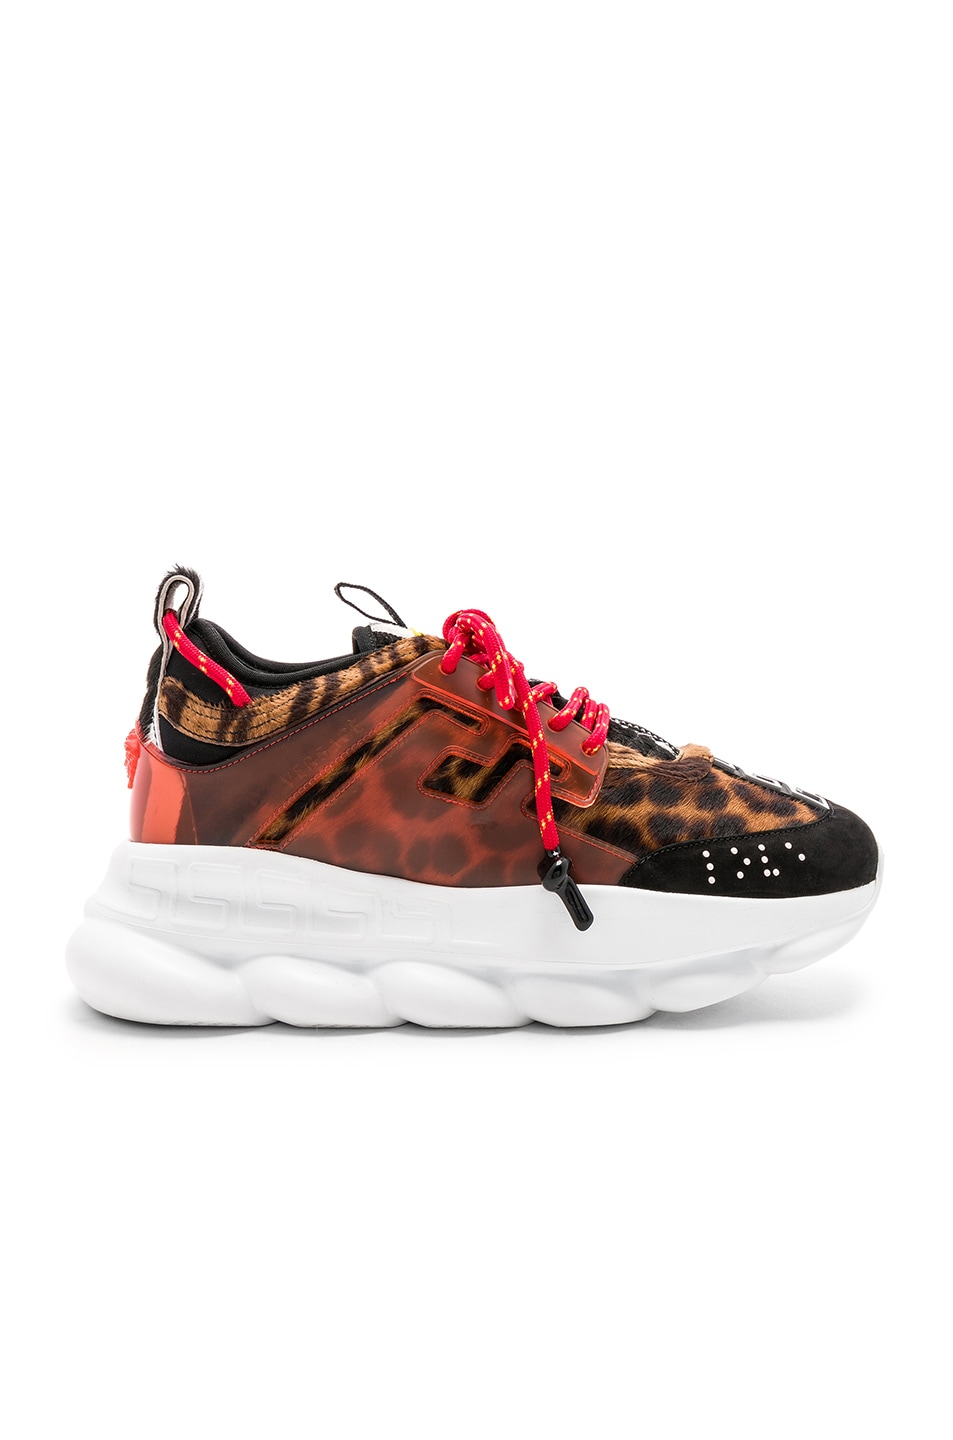 Image 2 of VERSACE Calf Hair Chain Reaction Sneakers in Black & Red Print